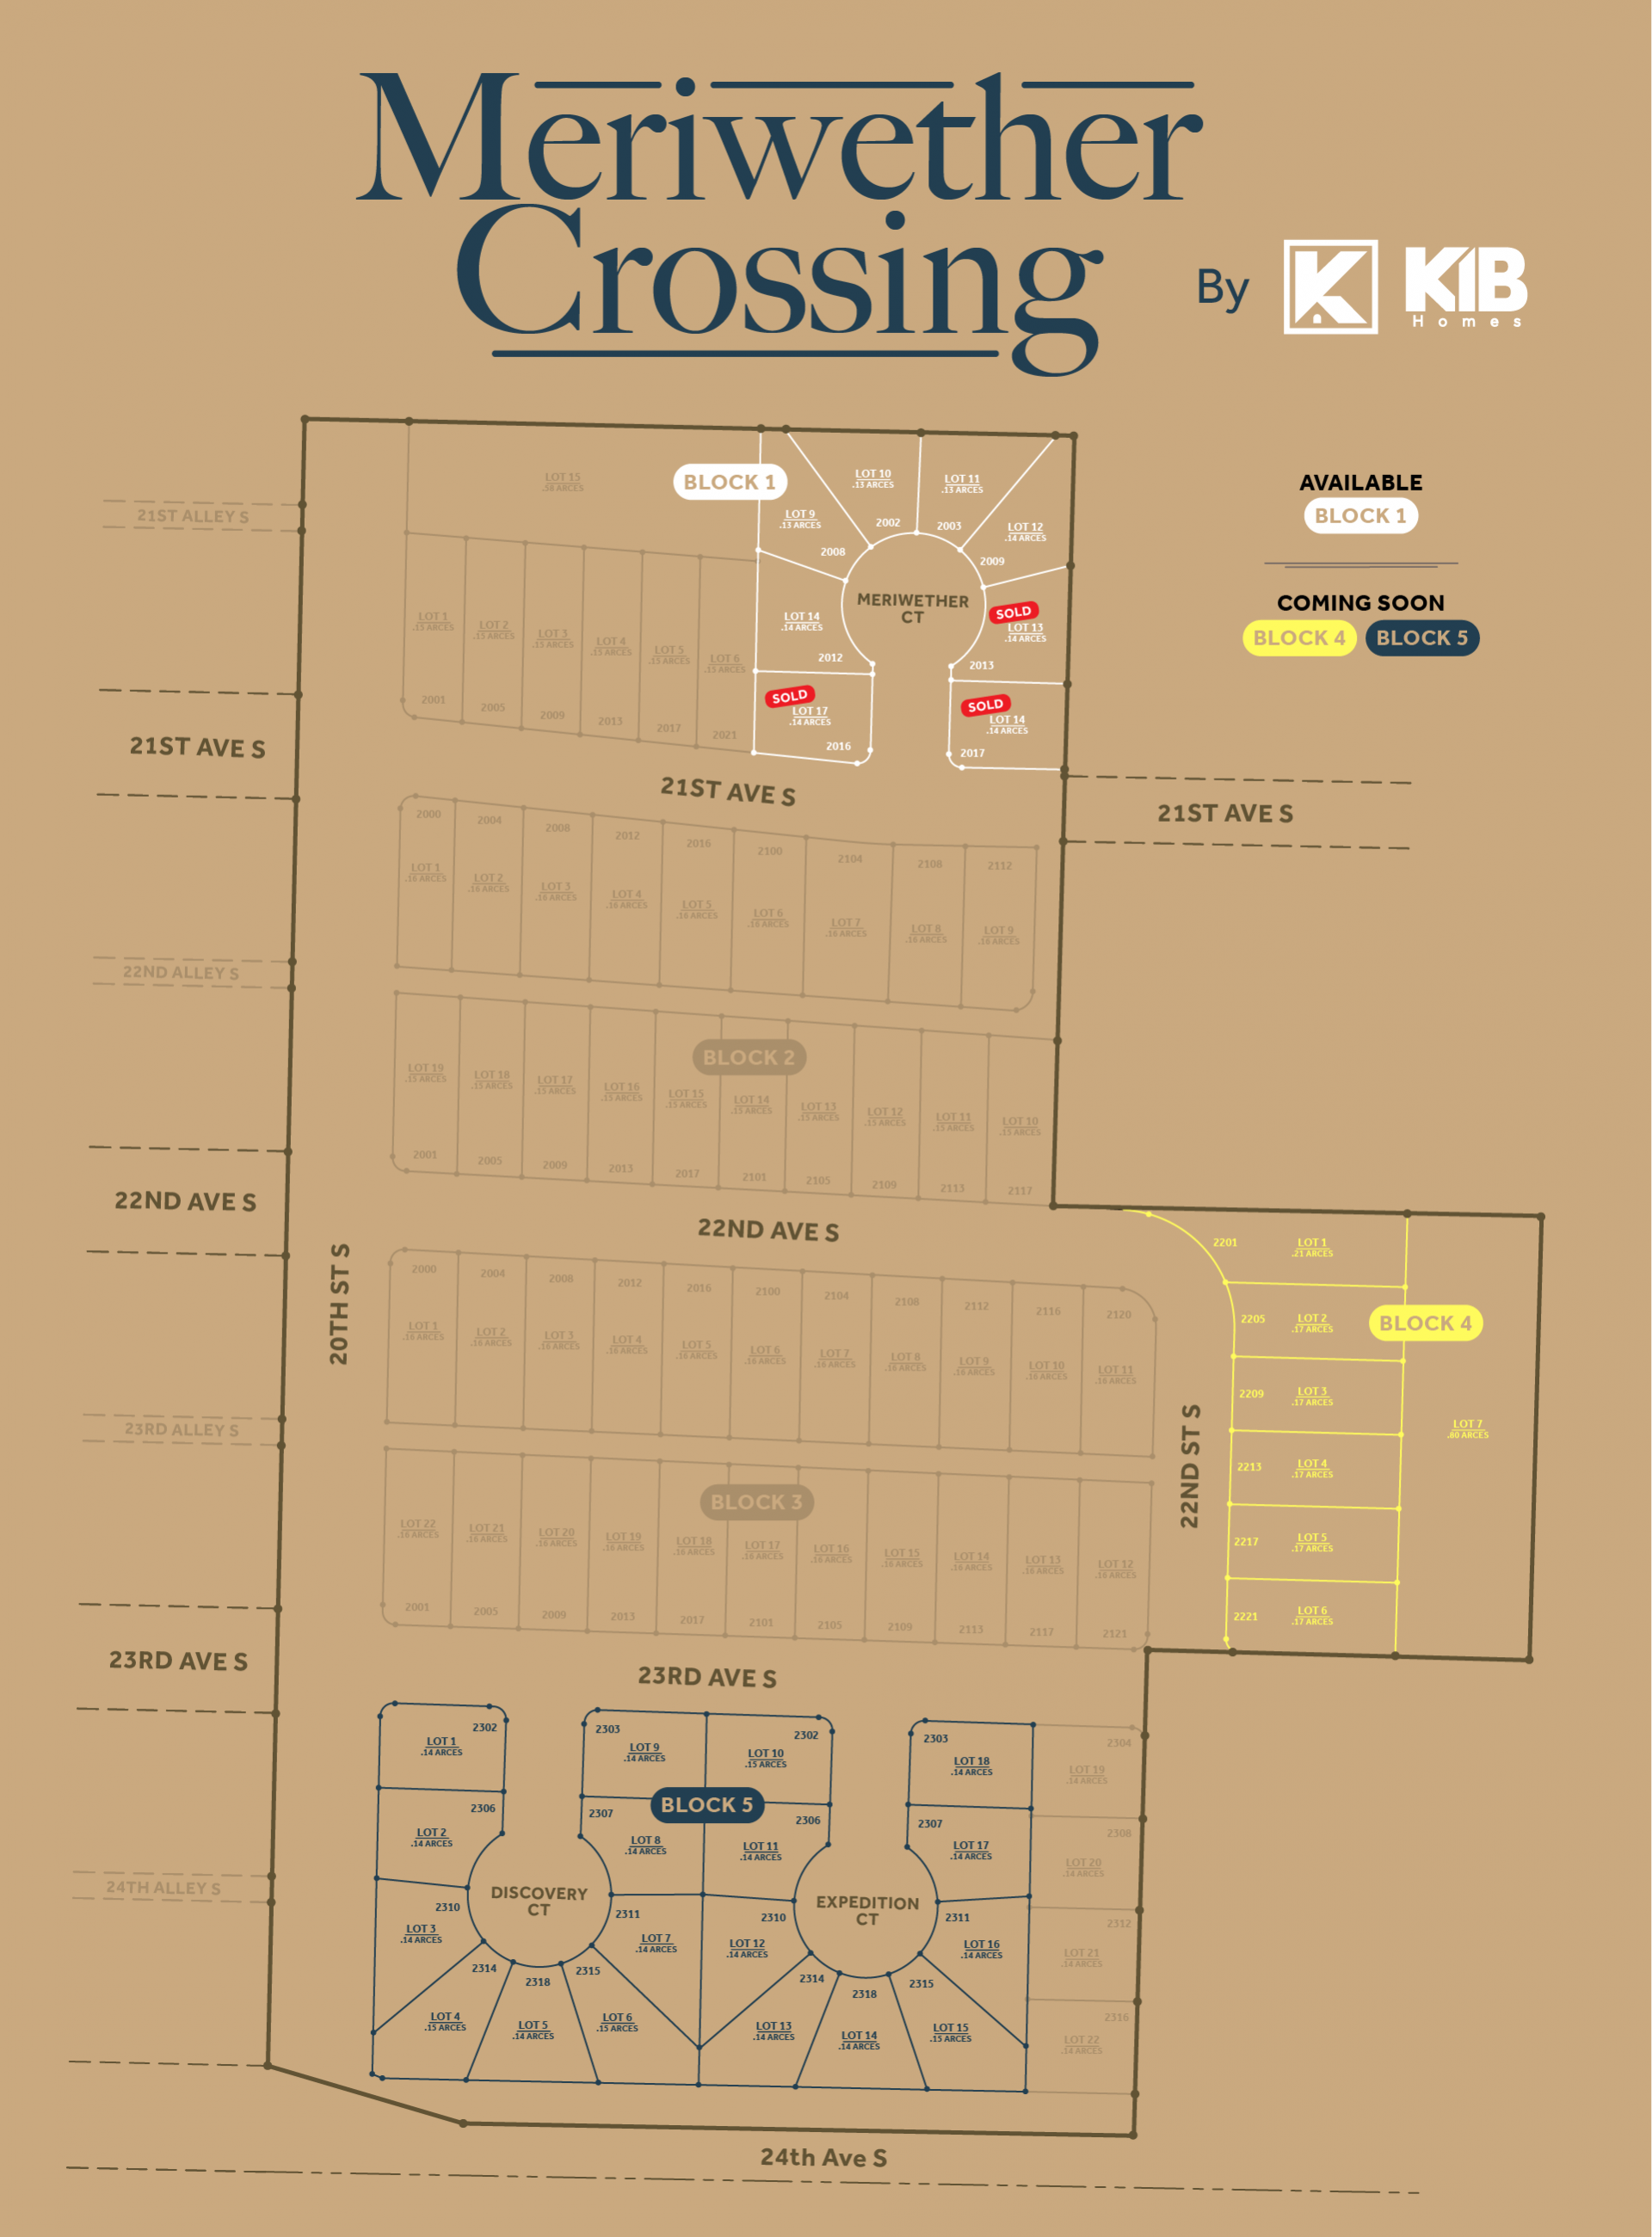 https://kibhomes.com/wp-content/uploads/2020/05/KIB-Meriwether-Crossing-Available-Lots-Map-1920x2600-v2-1920x2600.png